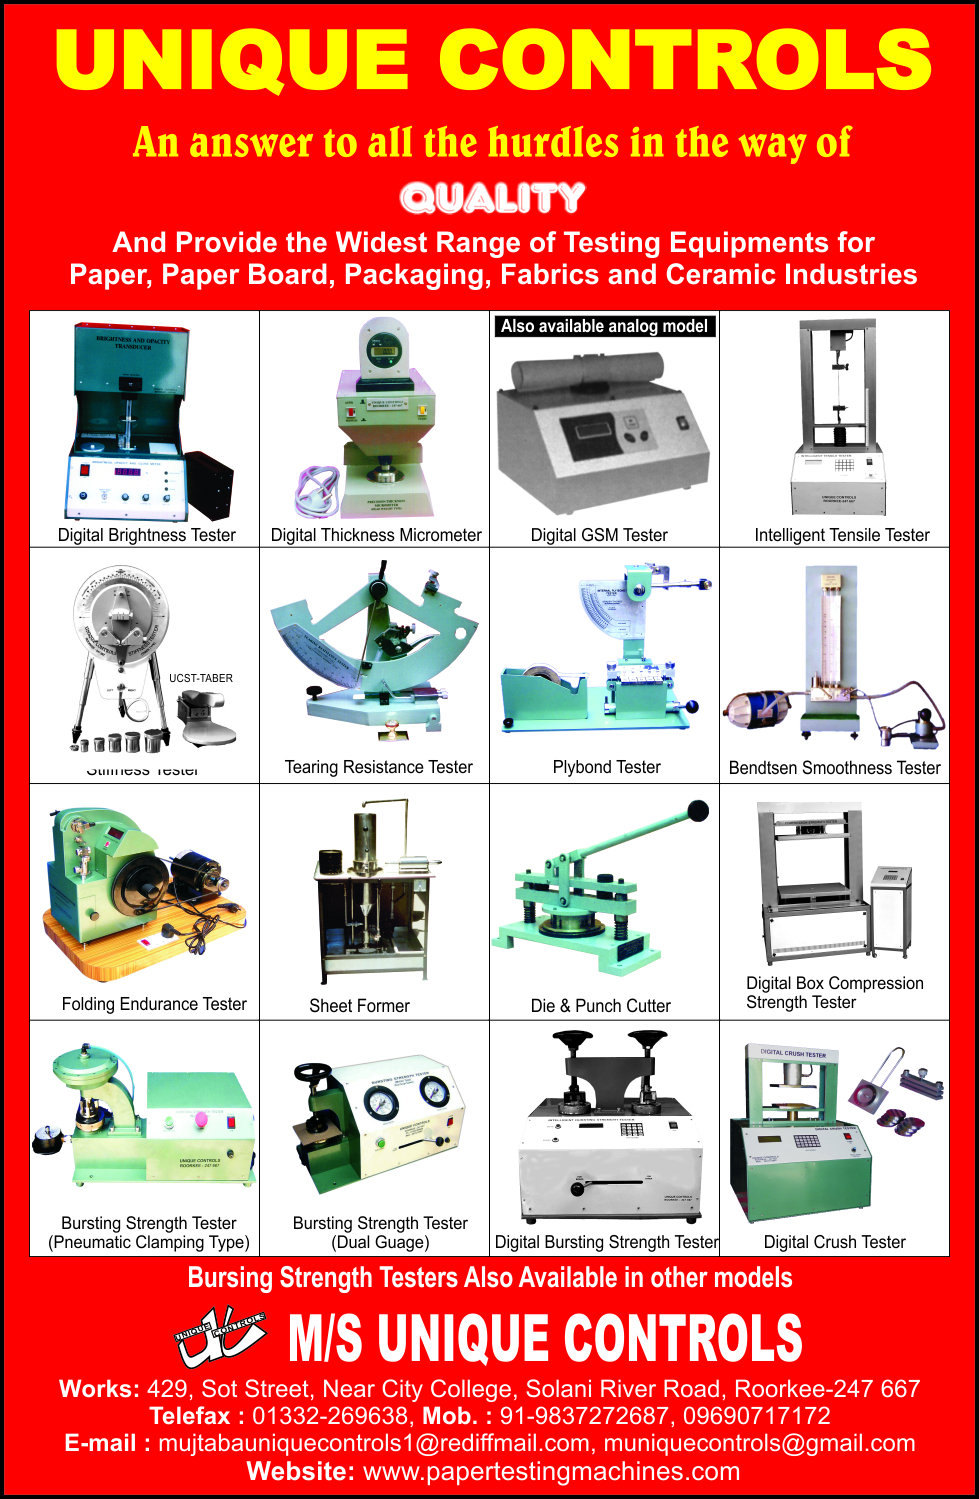 BS Testers, Digital Abrasions, Digital Bursting Strength Testers, Digital Brightness Testers, Digital Thickness Micrometers, Digital GSM Testers, Intelligent Tensile Testers, Stiffness Testers, Tearing Resistance Testers, Plybond Testers, Bendtsen Smoothness Testers, Folding Endurance Testers, Sheet Formers, Die Cutters, Punch Cutters, Digital Box Compression Strength Testers, Pneumatic Clamping Type Bursting Strength Testers, Dual Guage Bursting Strength Testers, Digital Bursting Strength Testers, Digital Crush Testers